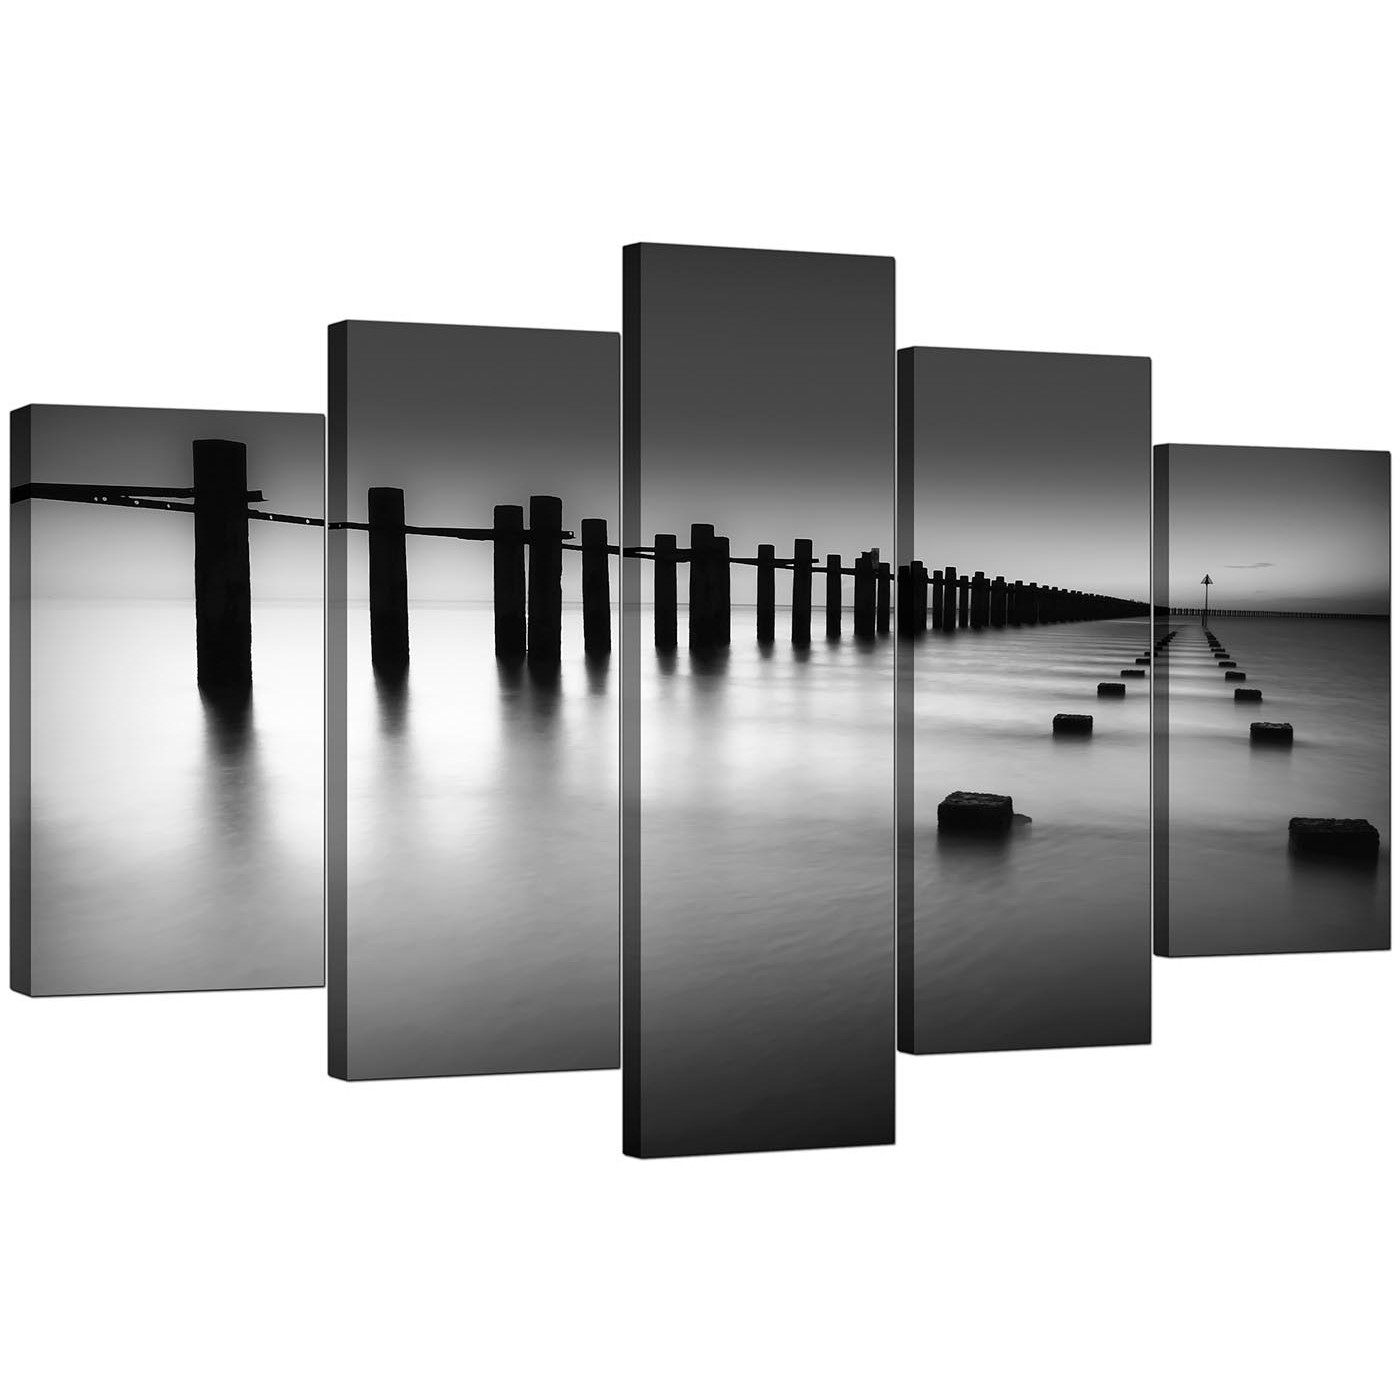 Extra Large Sea Canvas Prints 5 Piece In Black & White Within Current Black And White Large Canvas Wall Art (View 11 of 20)